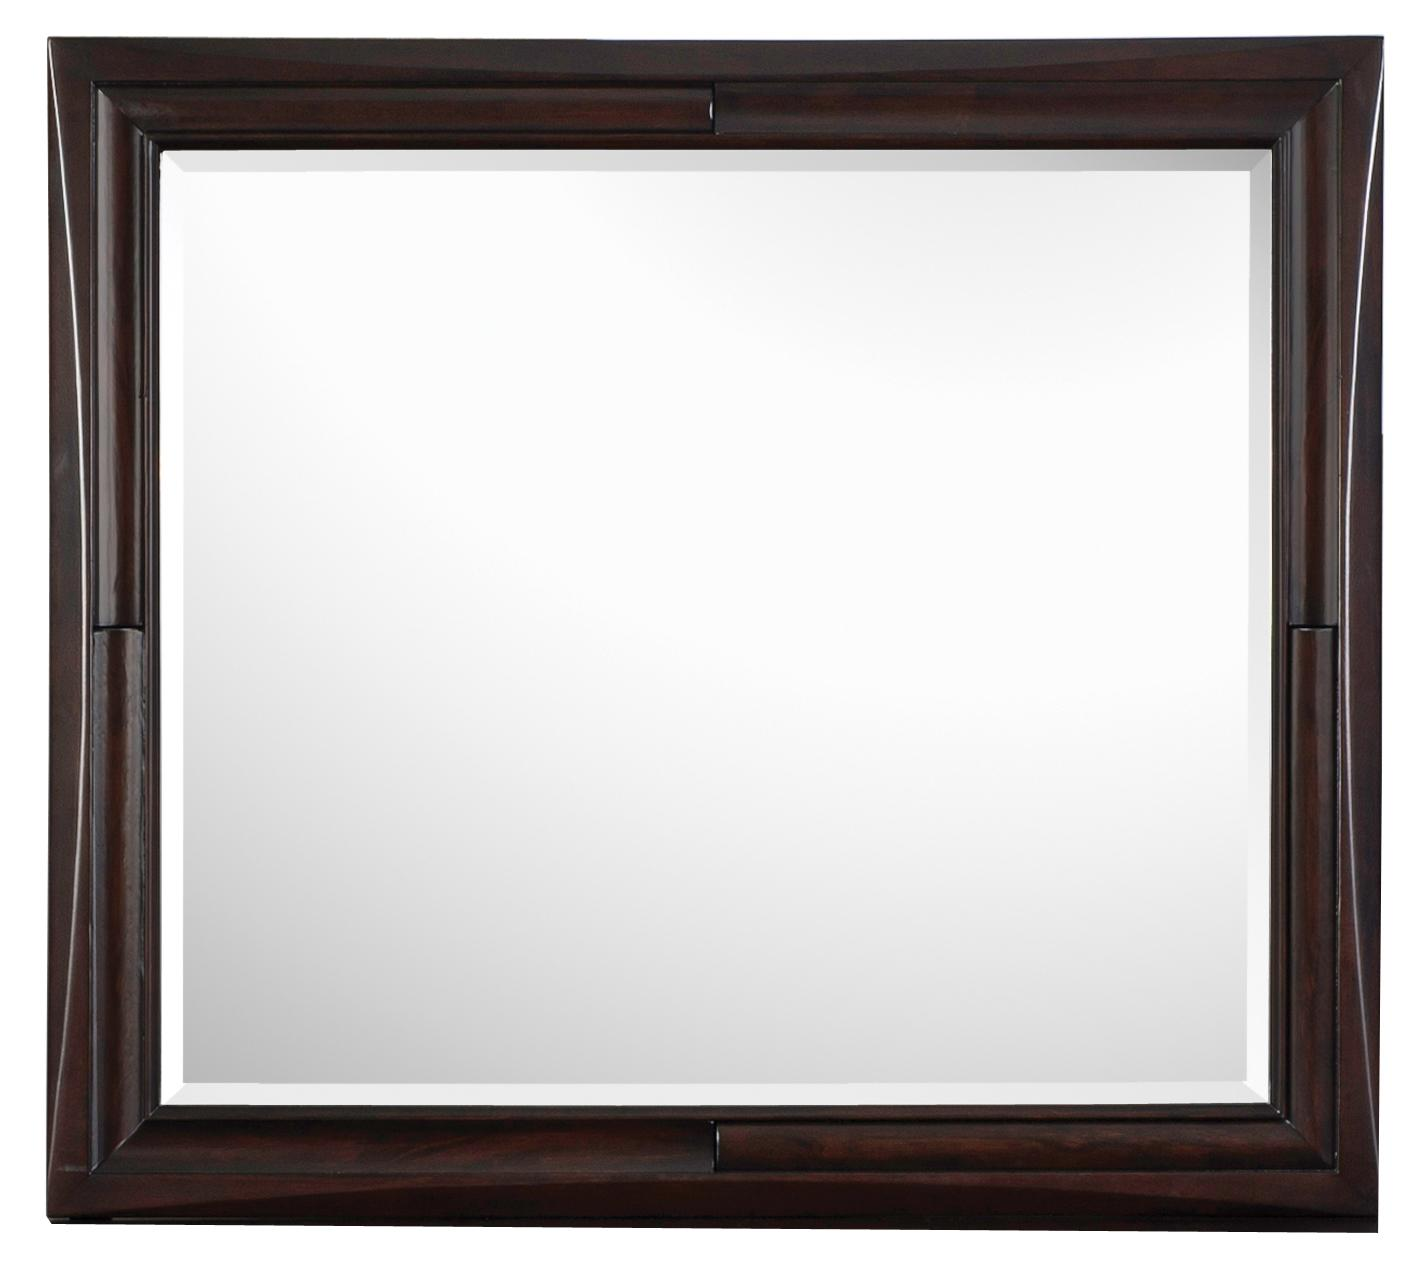 Belfort Select Cosmo Dresser Mirror - Item Number: B1794-40